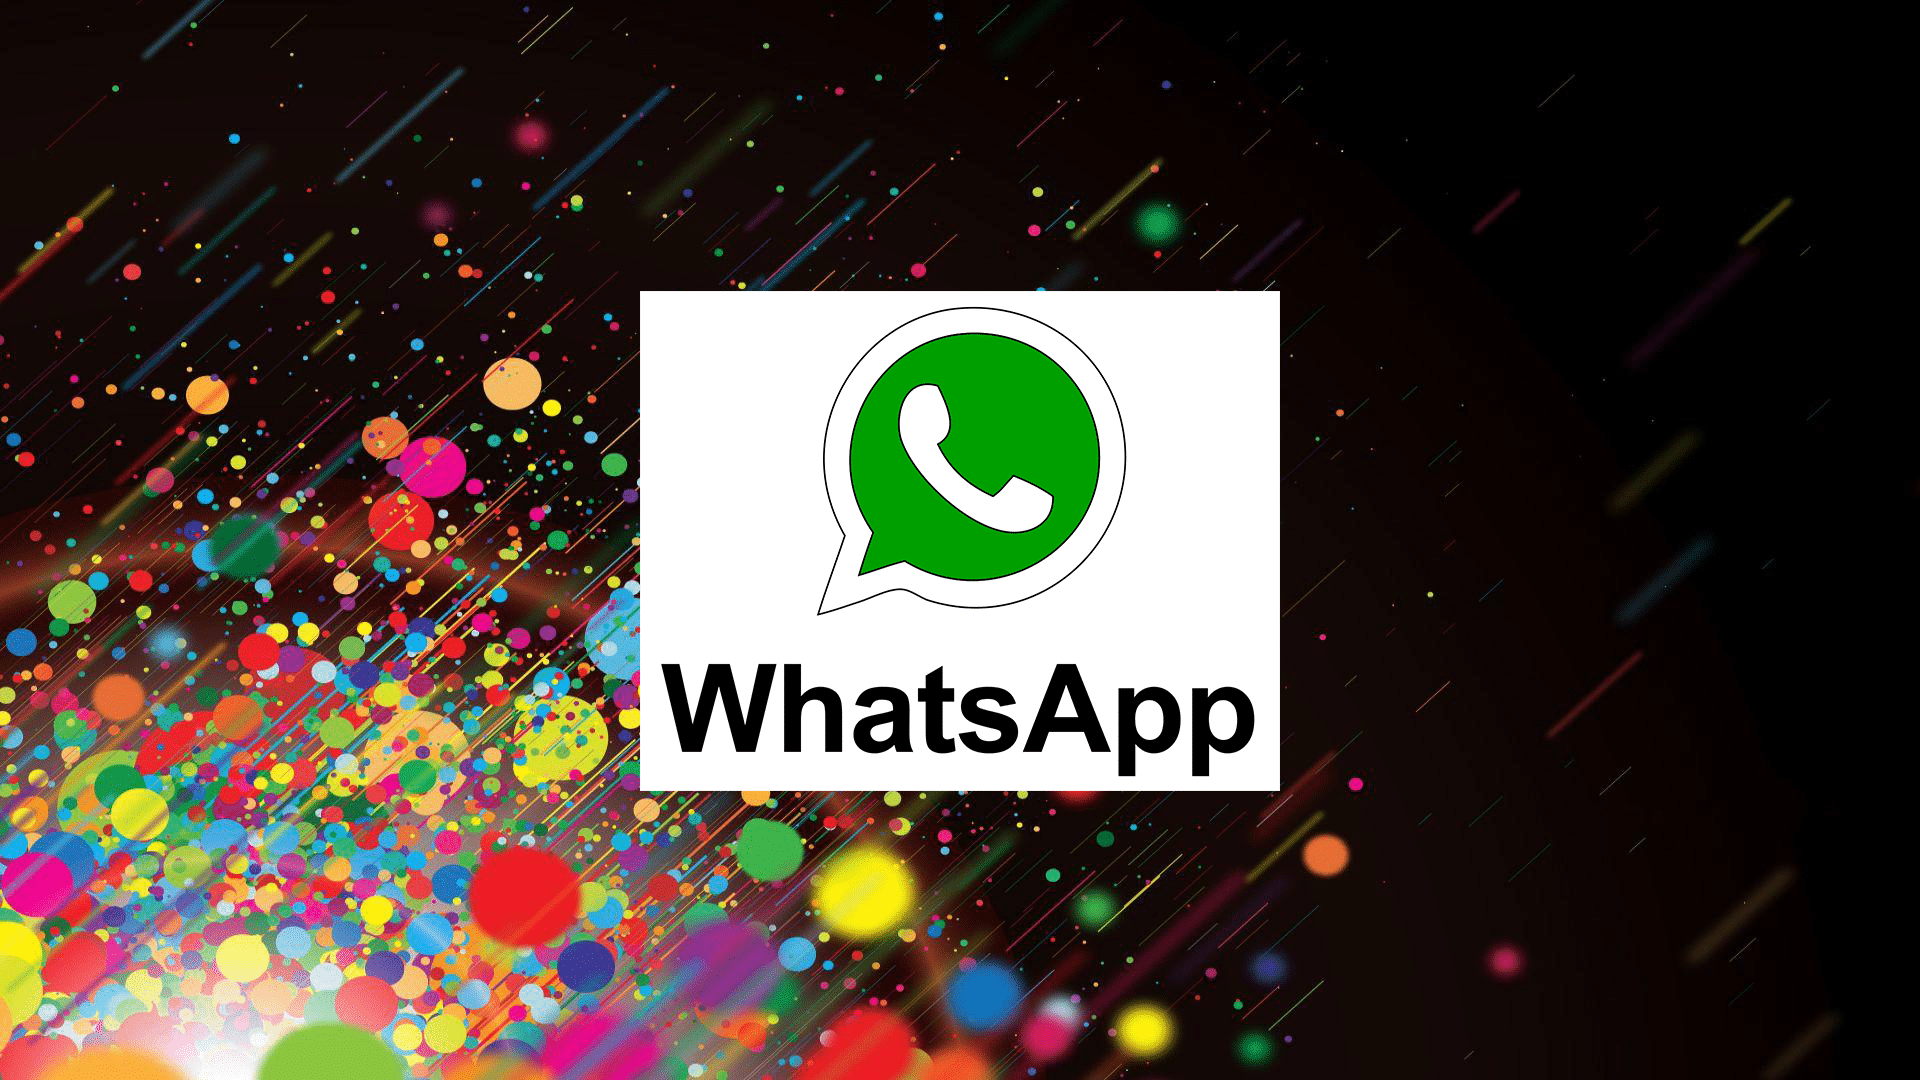 Come Modificare Lo Sfondo Di Whatsapp Su Iphone Wizblog